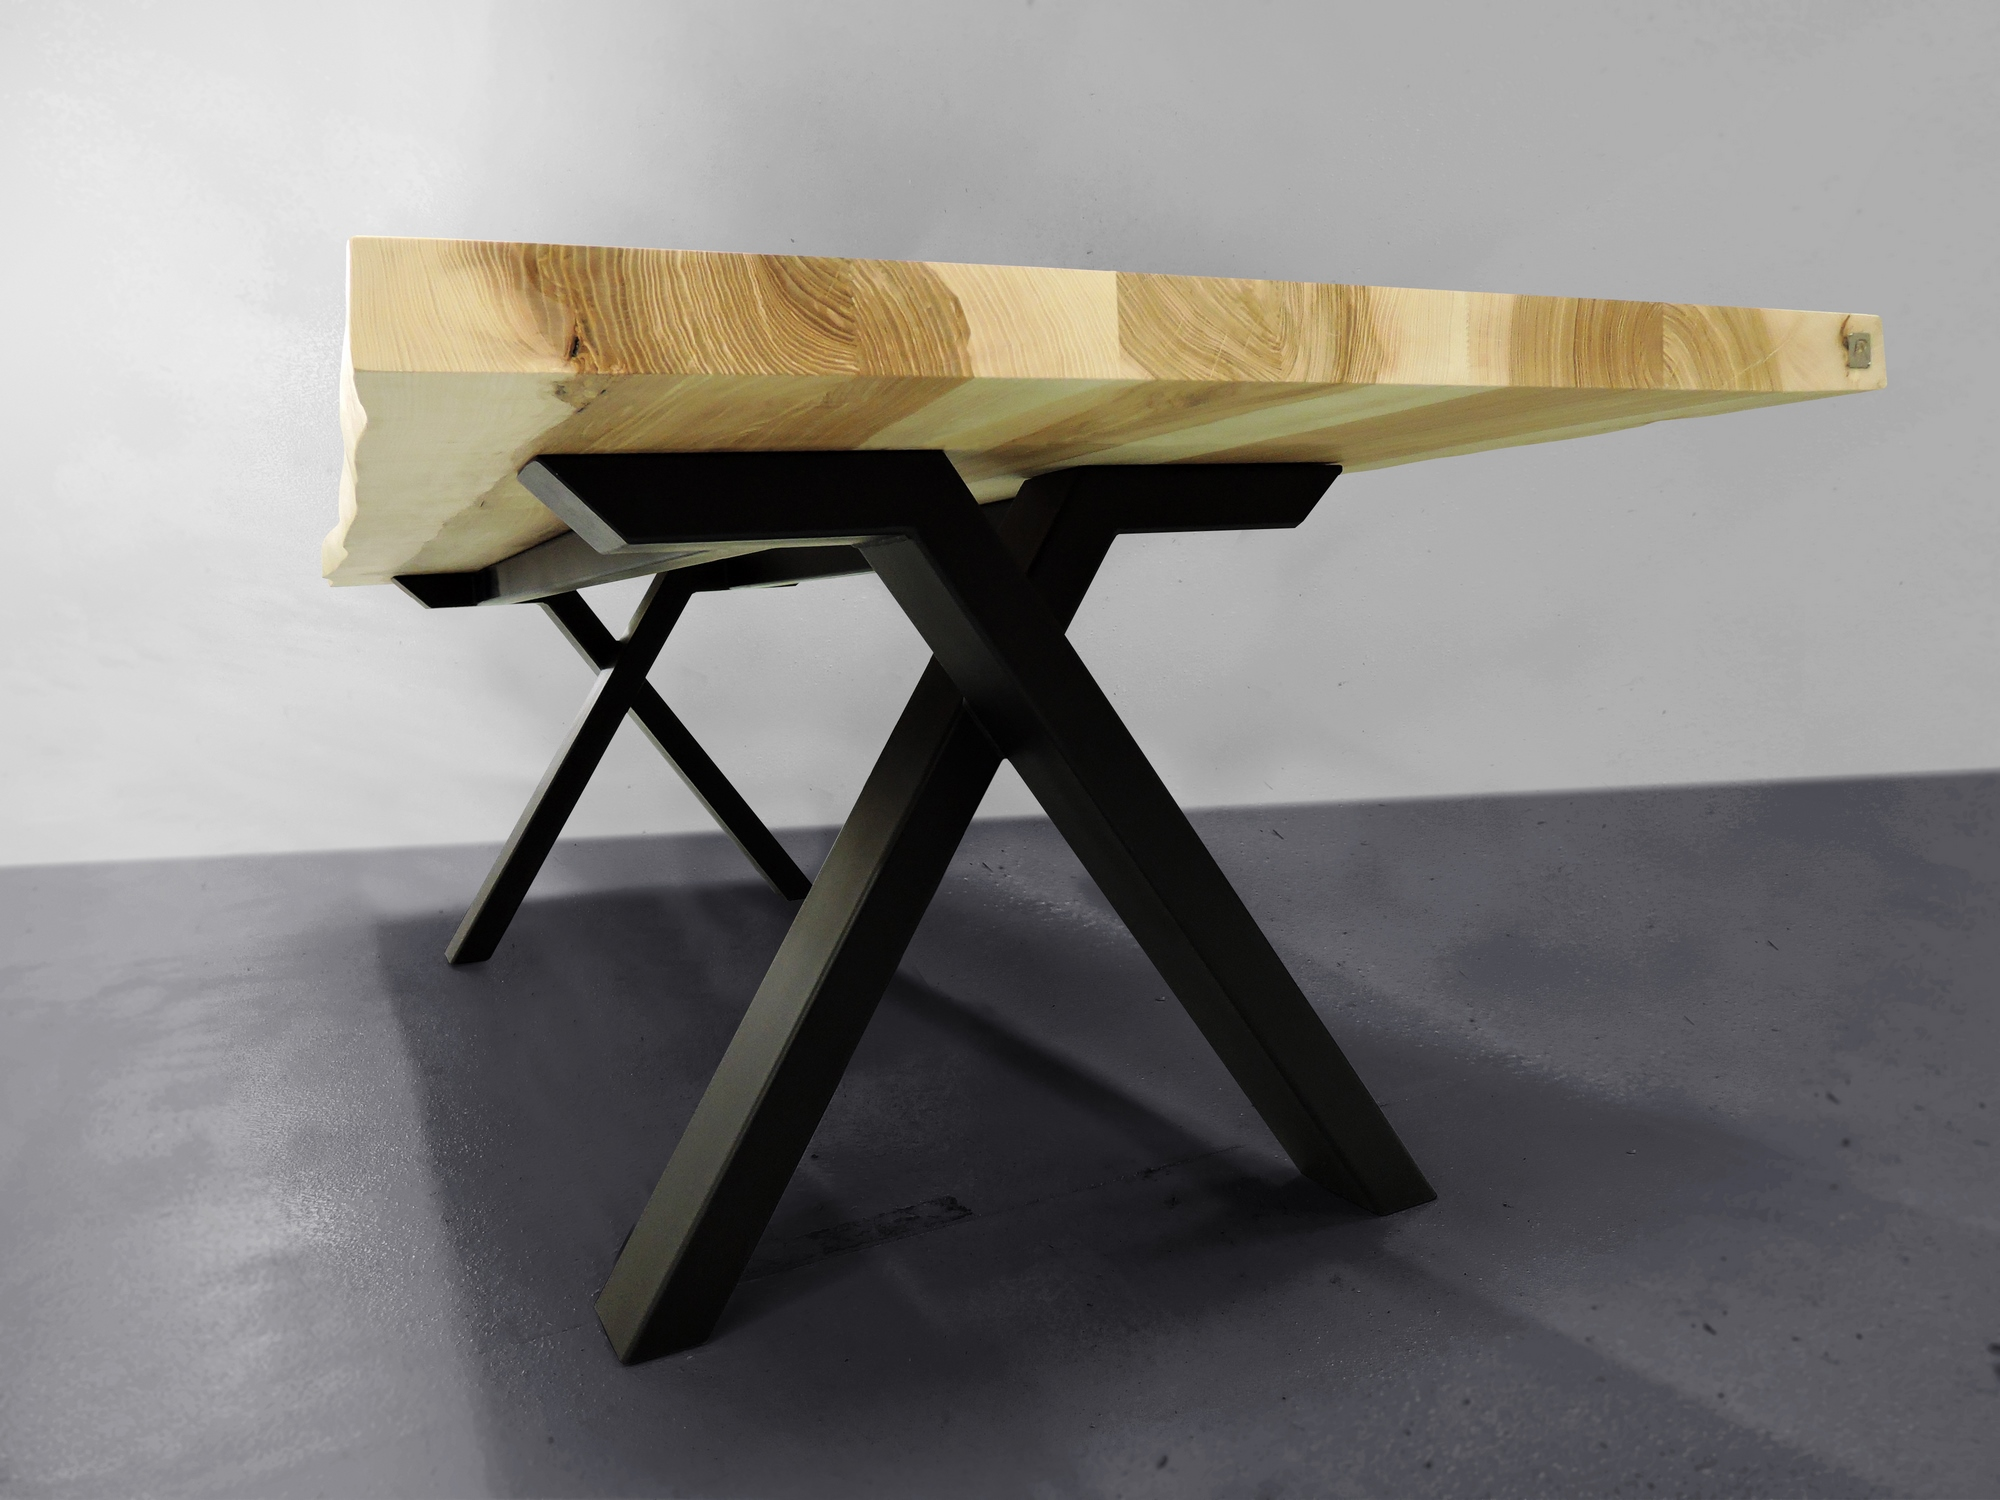 table viking live edge m tal et bois massif fabrication artisanale. Black Bedroom Furniture Sets. Home Design Ideas